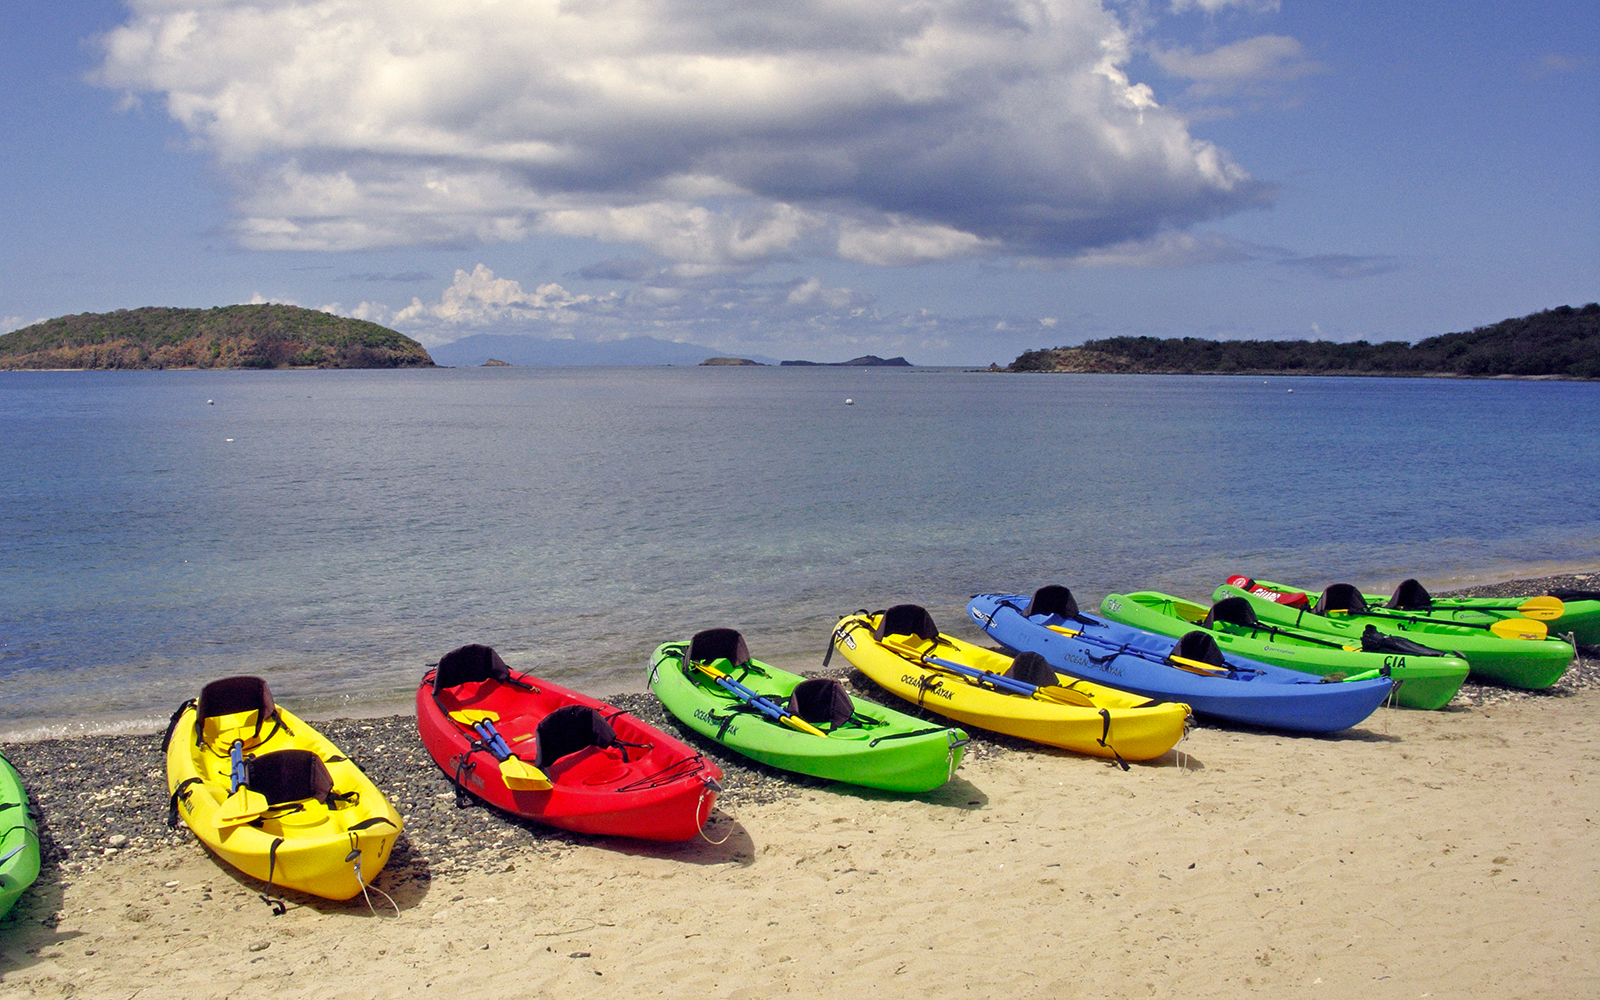 Kayaks at Tamarindo Beach